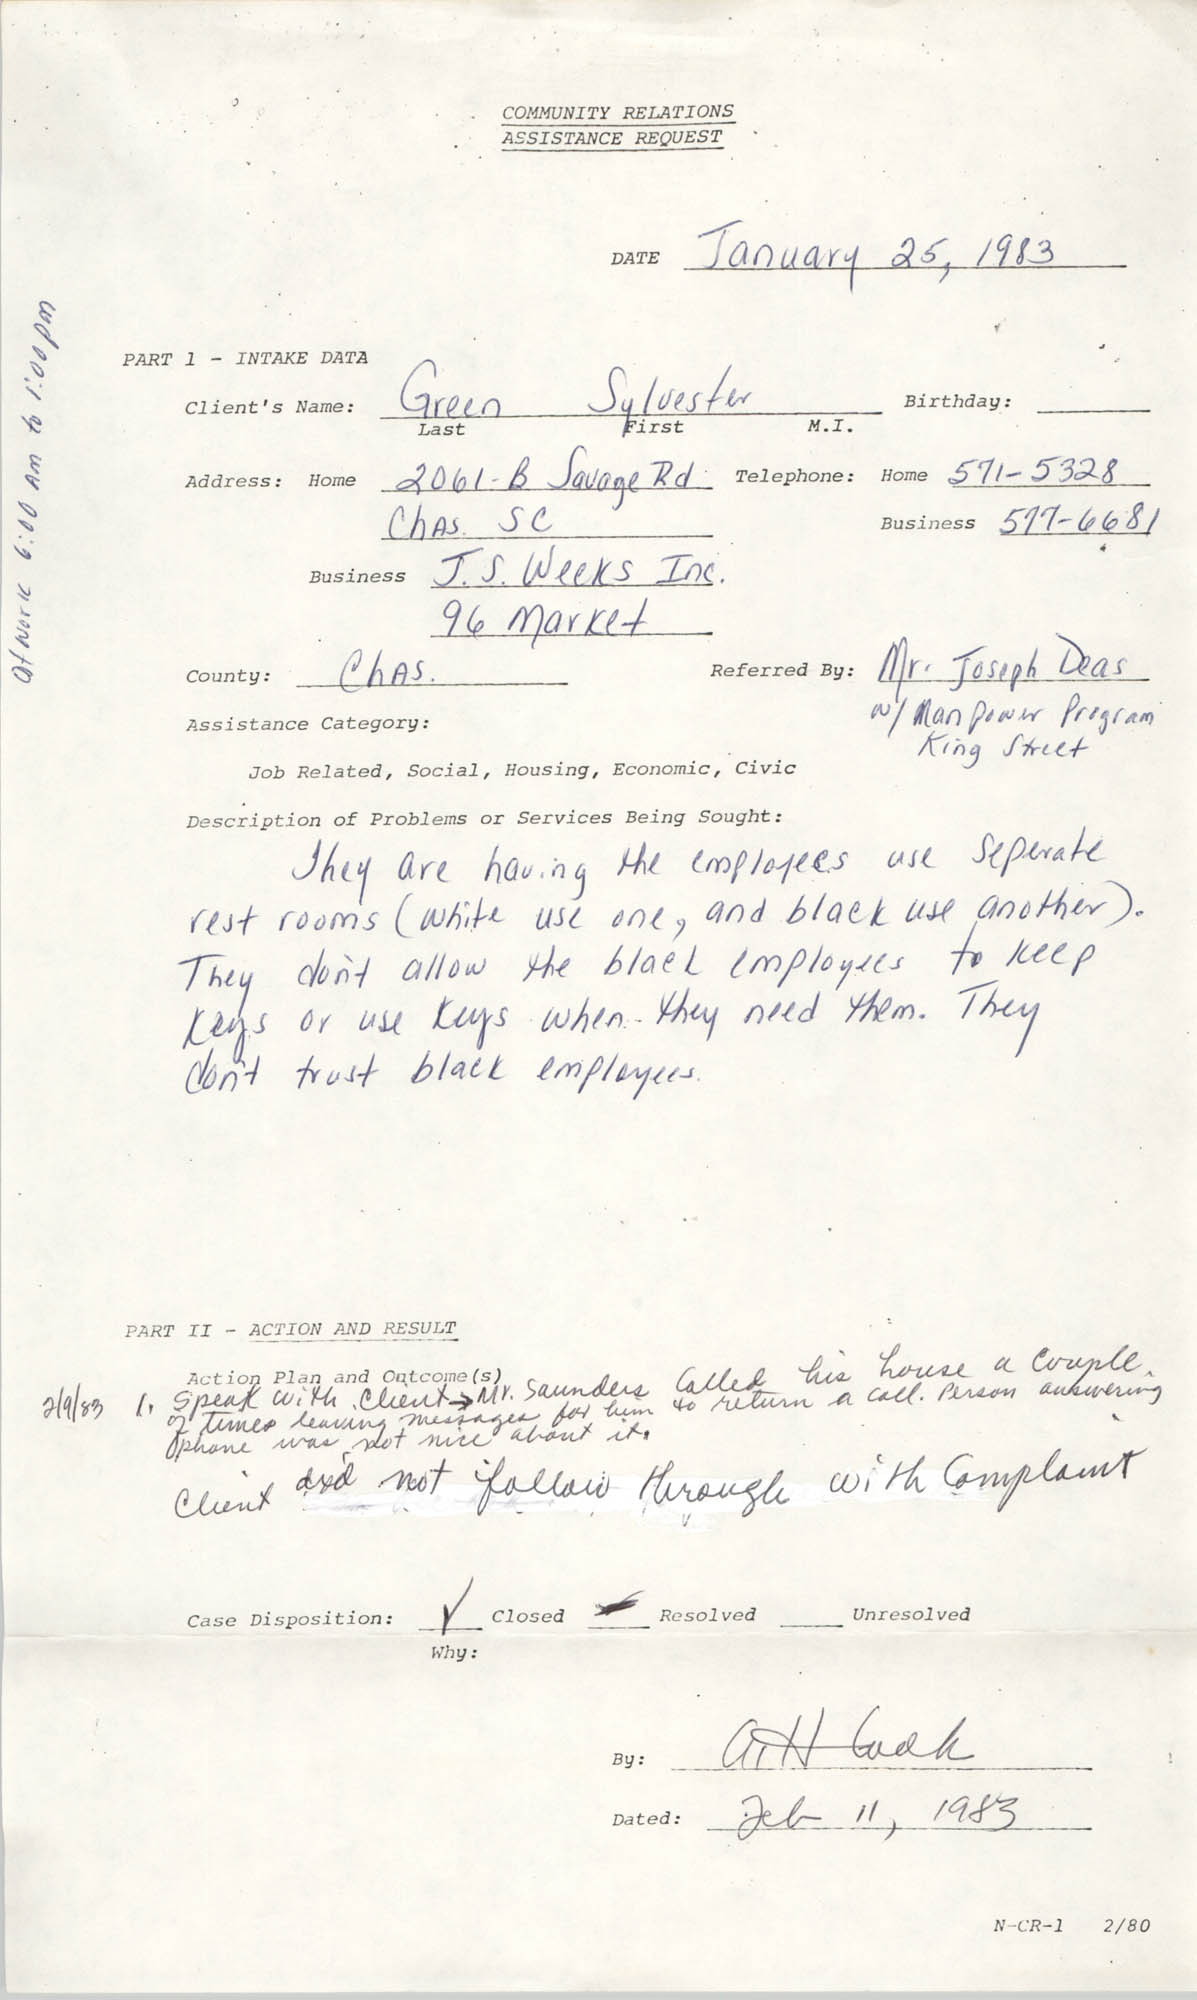 Community Relations Assistance Request, January 25, 1983